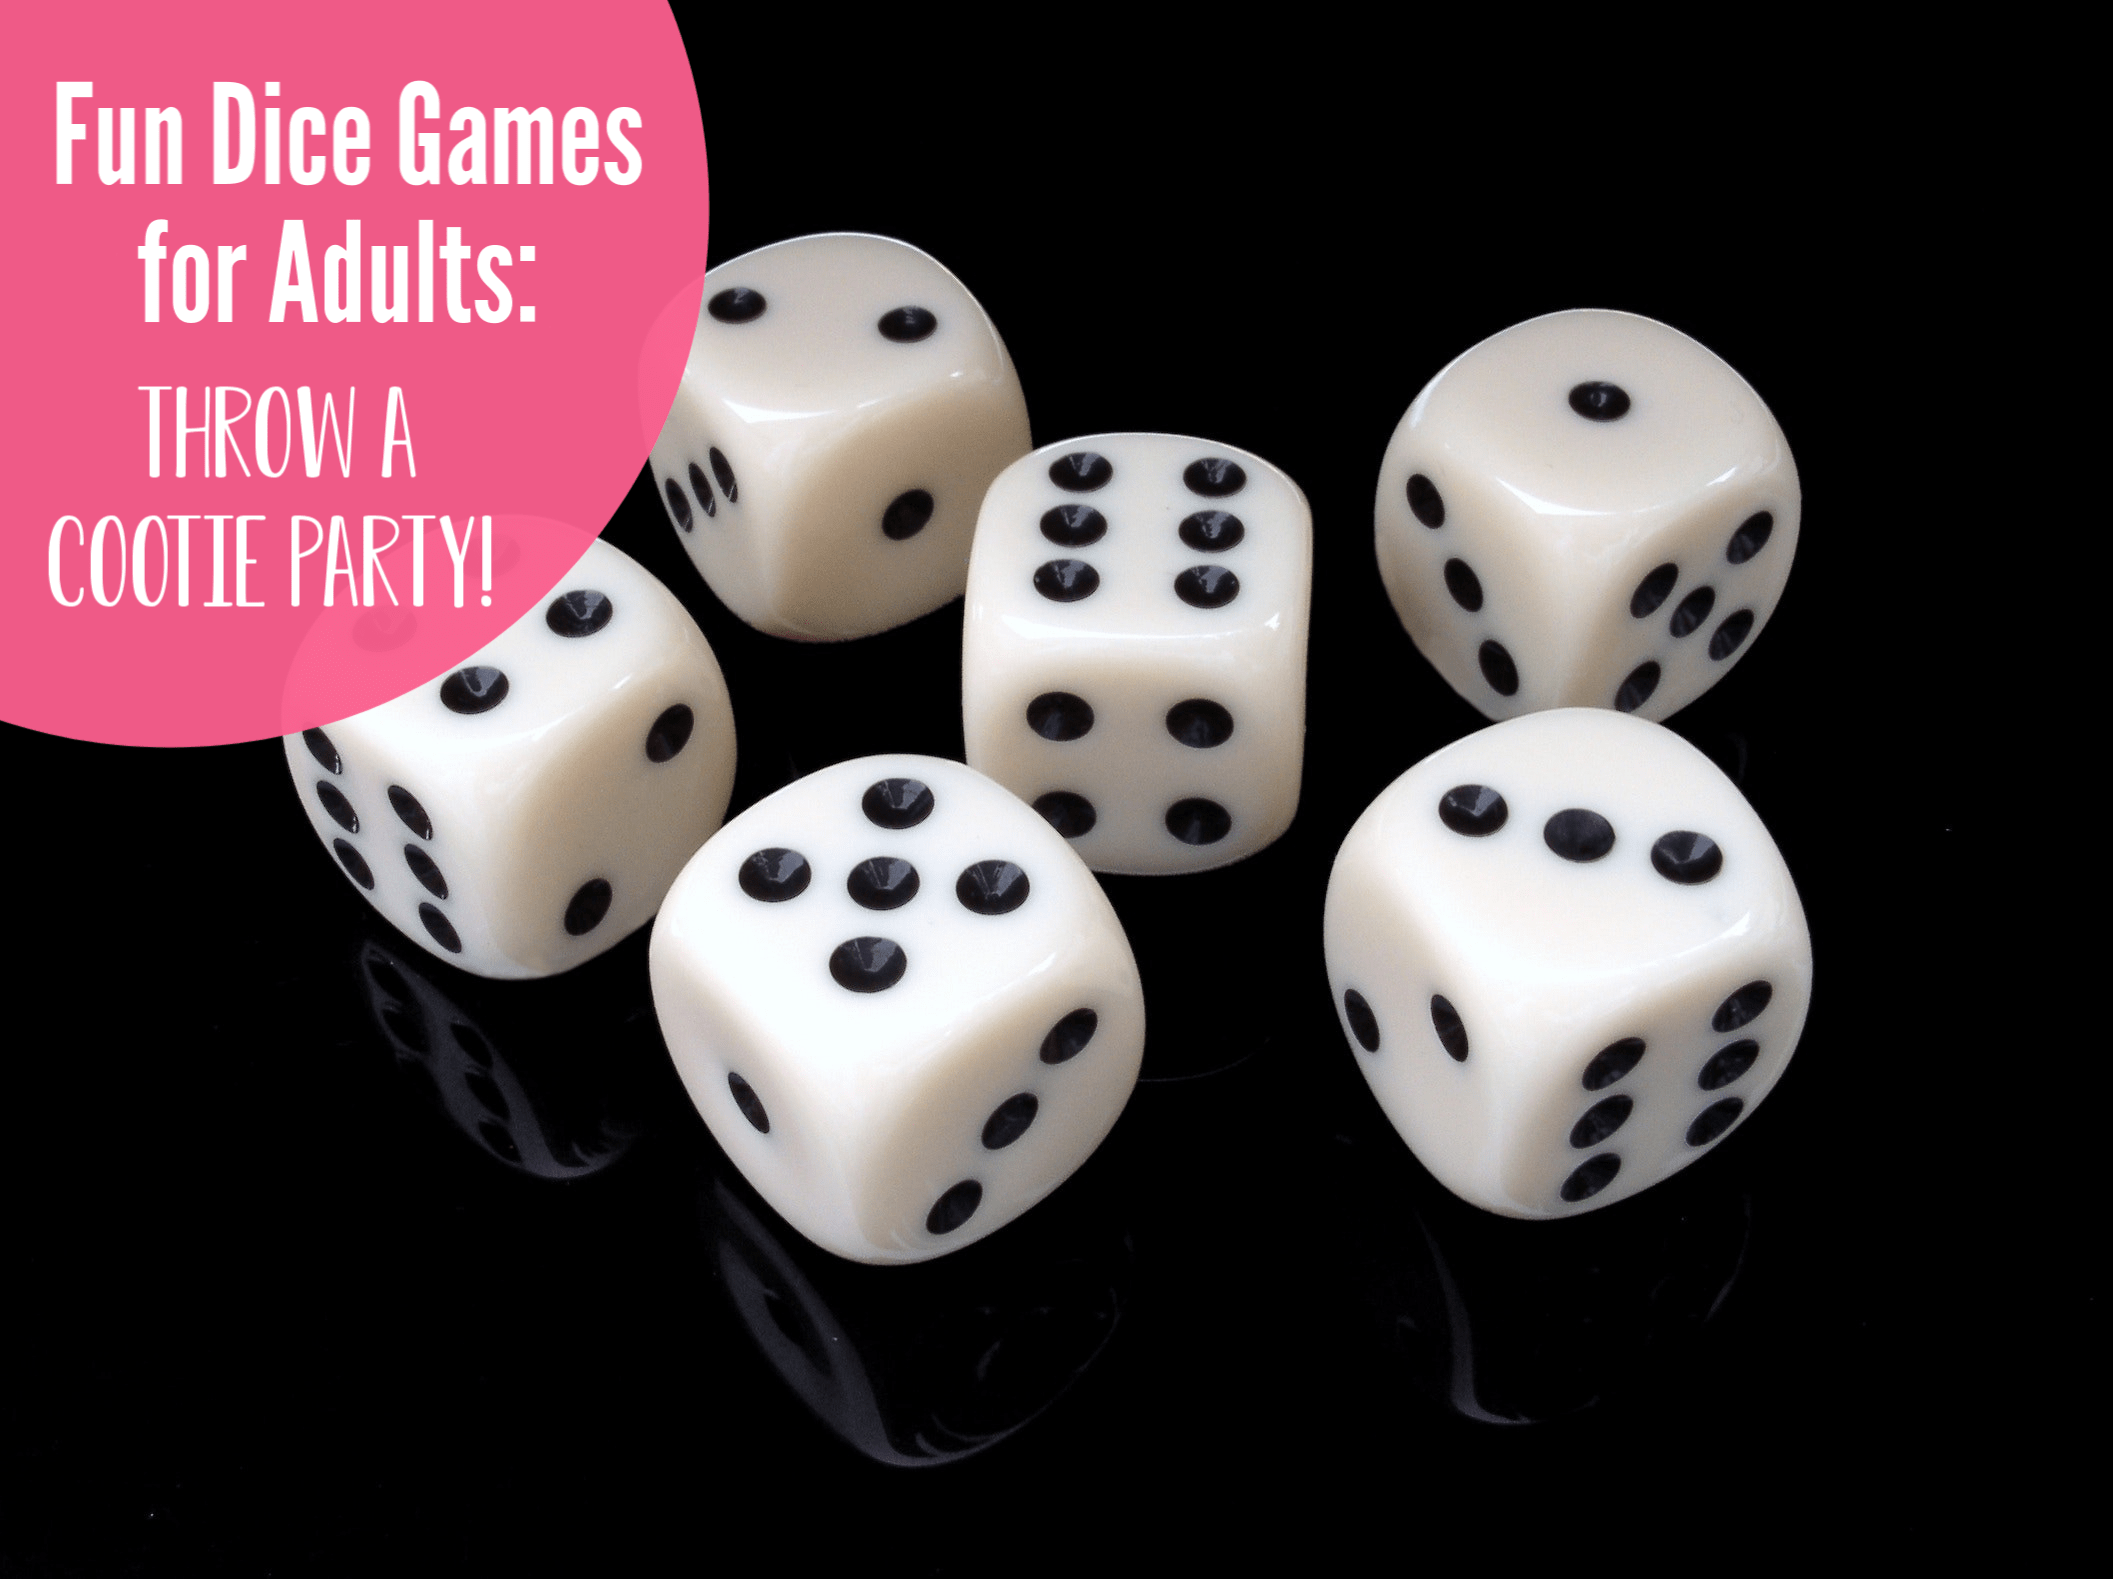 Fun Dice Games for Adults. Have a great adult game night.